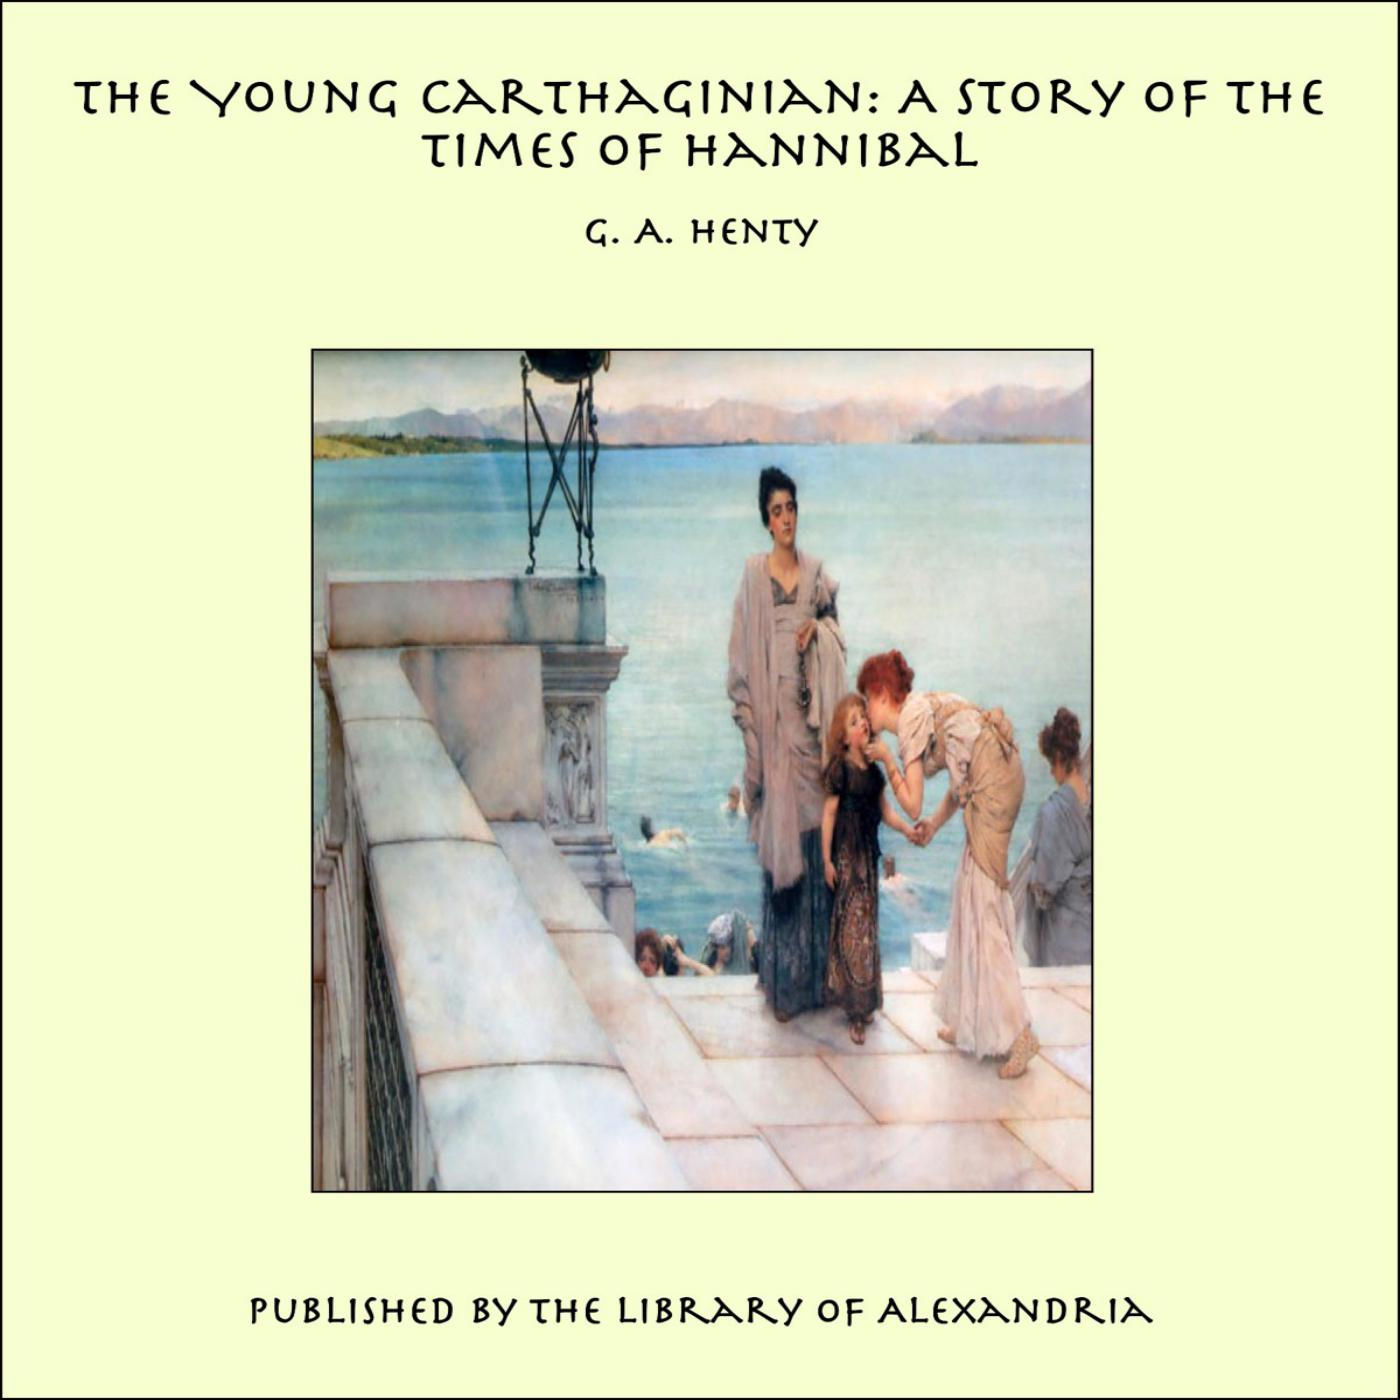 The Young Carthaginian: A Story of The Times of Hannibal By: G. A. Henty